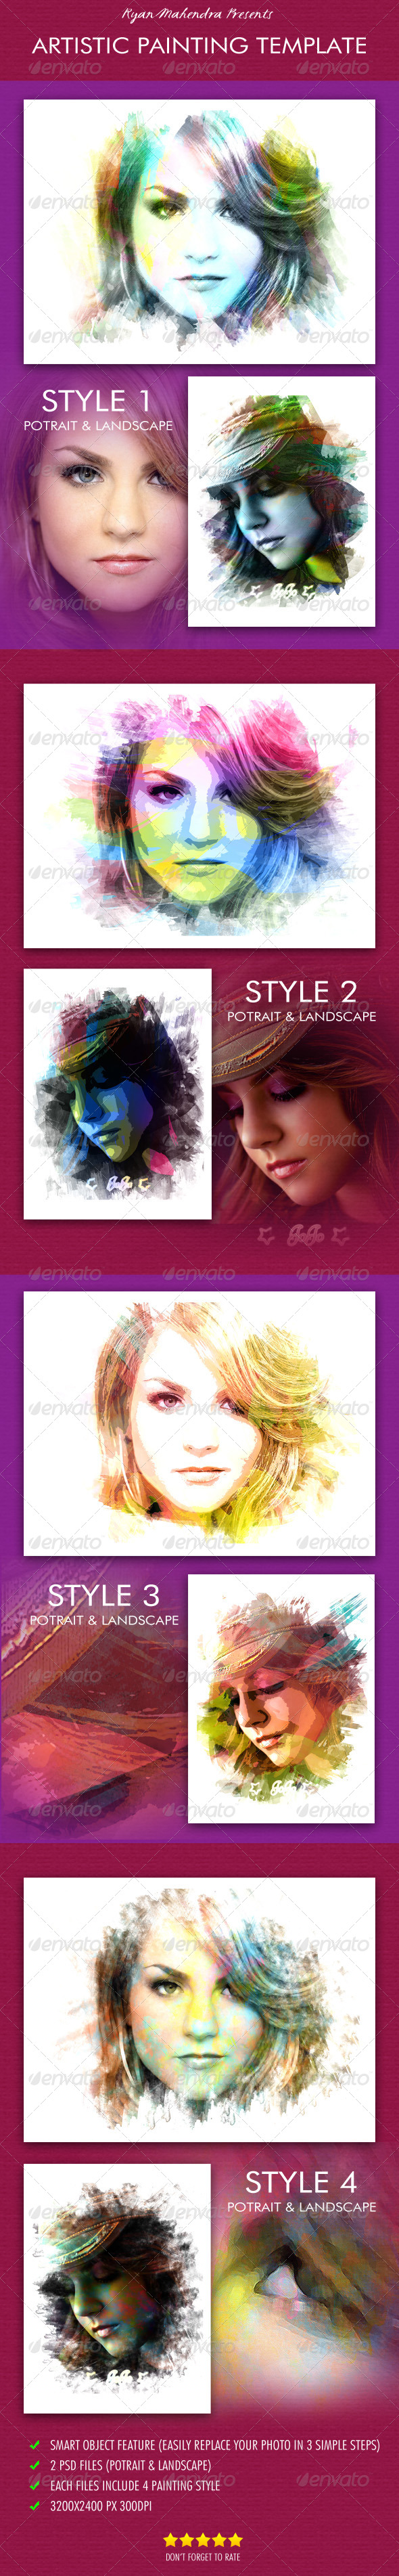 Artistic Painting Template - Artistic Photo Templates